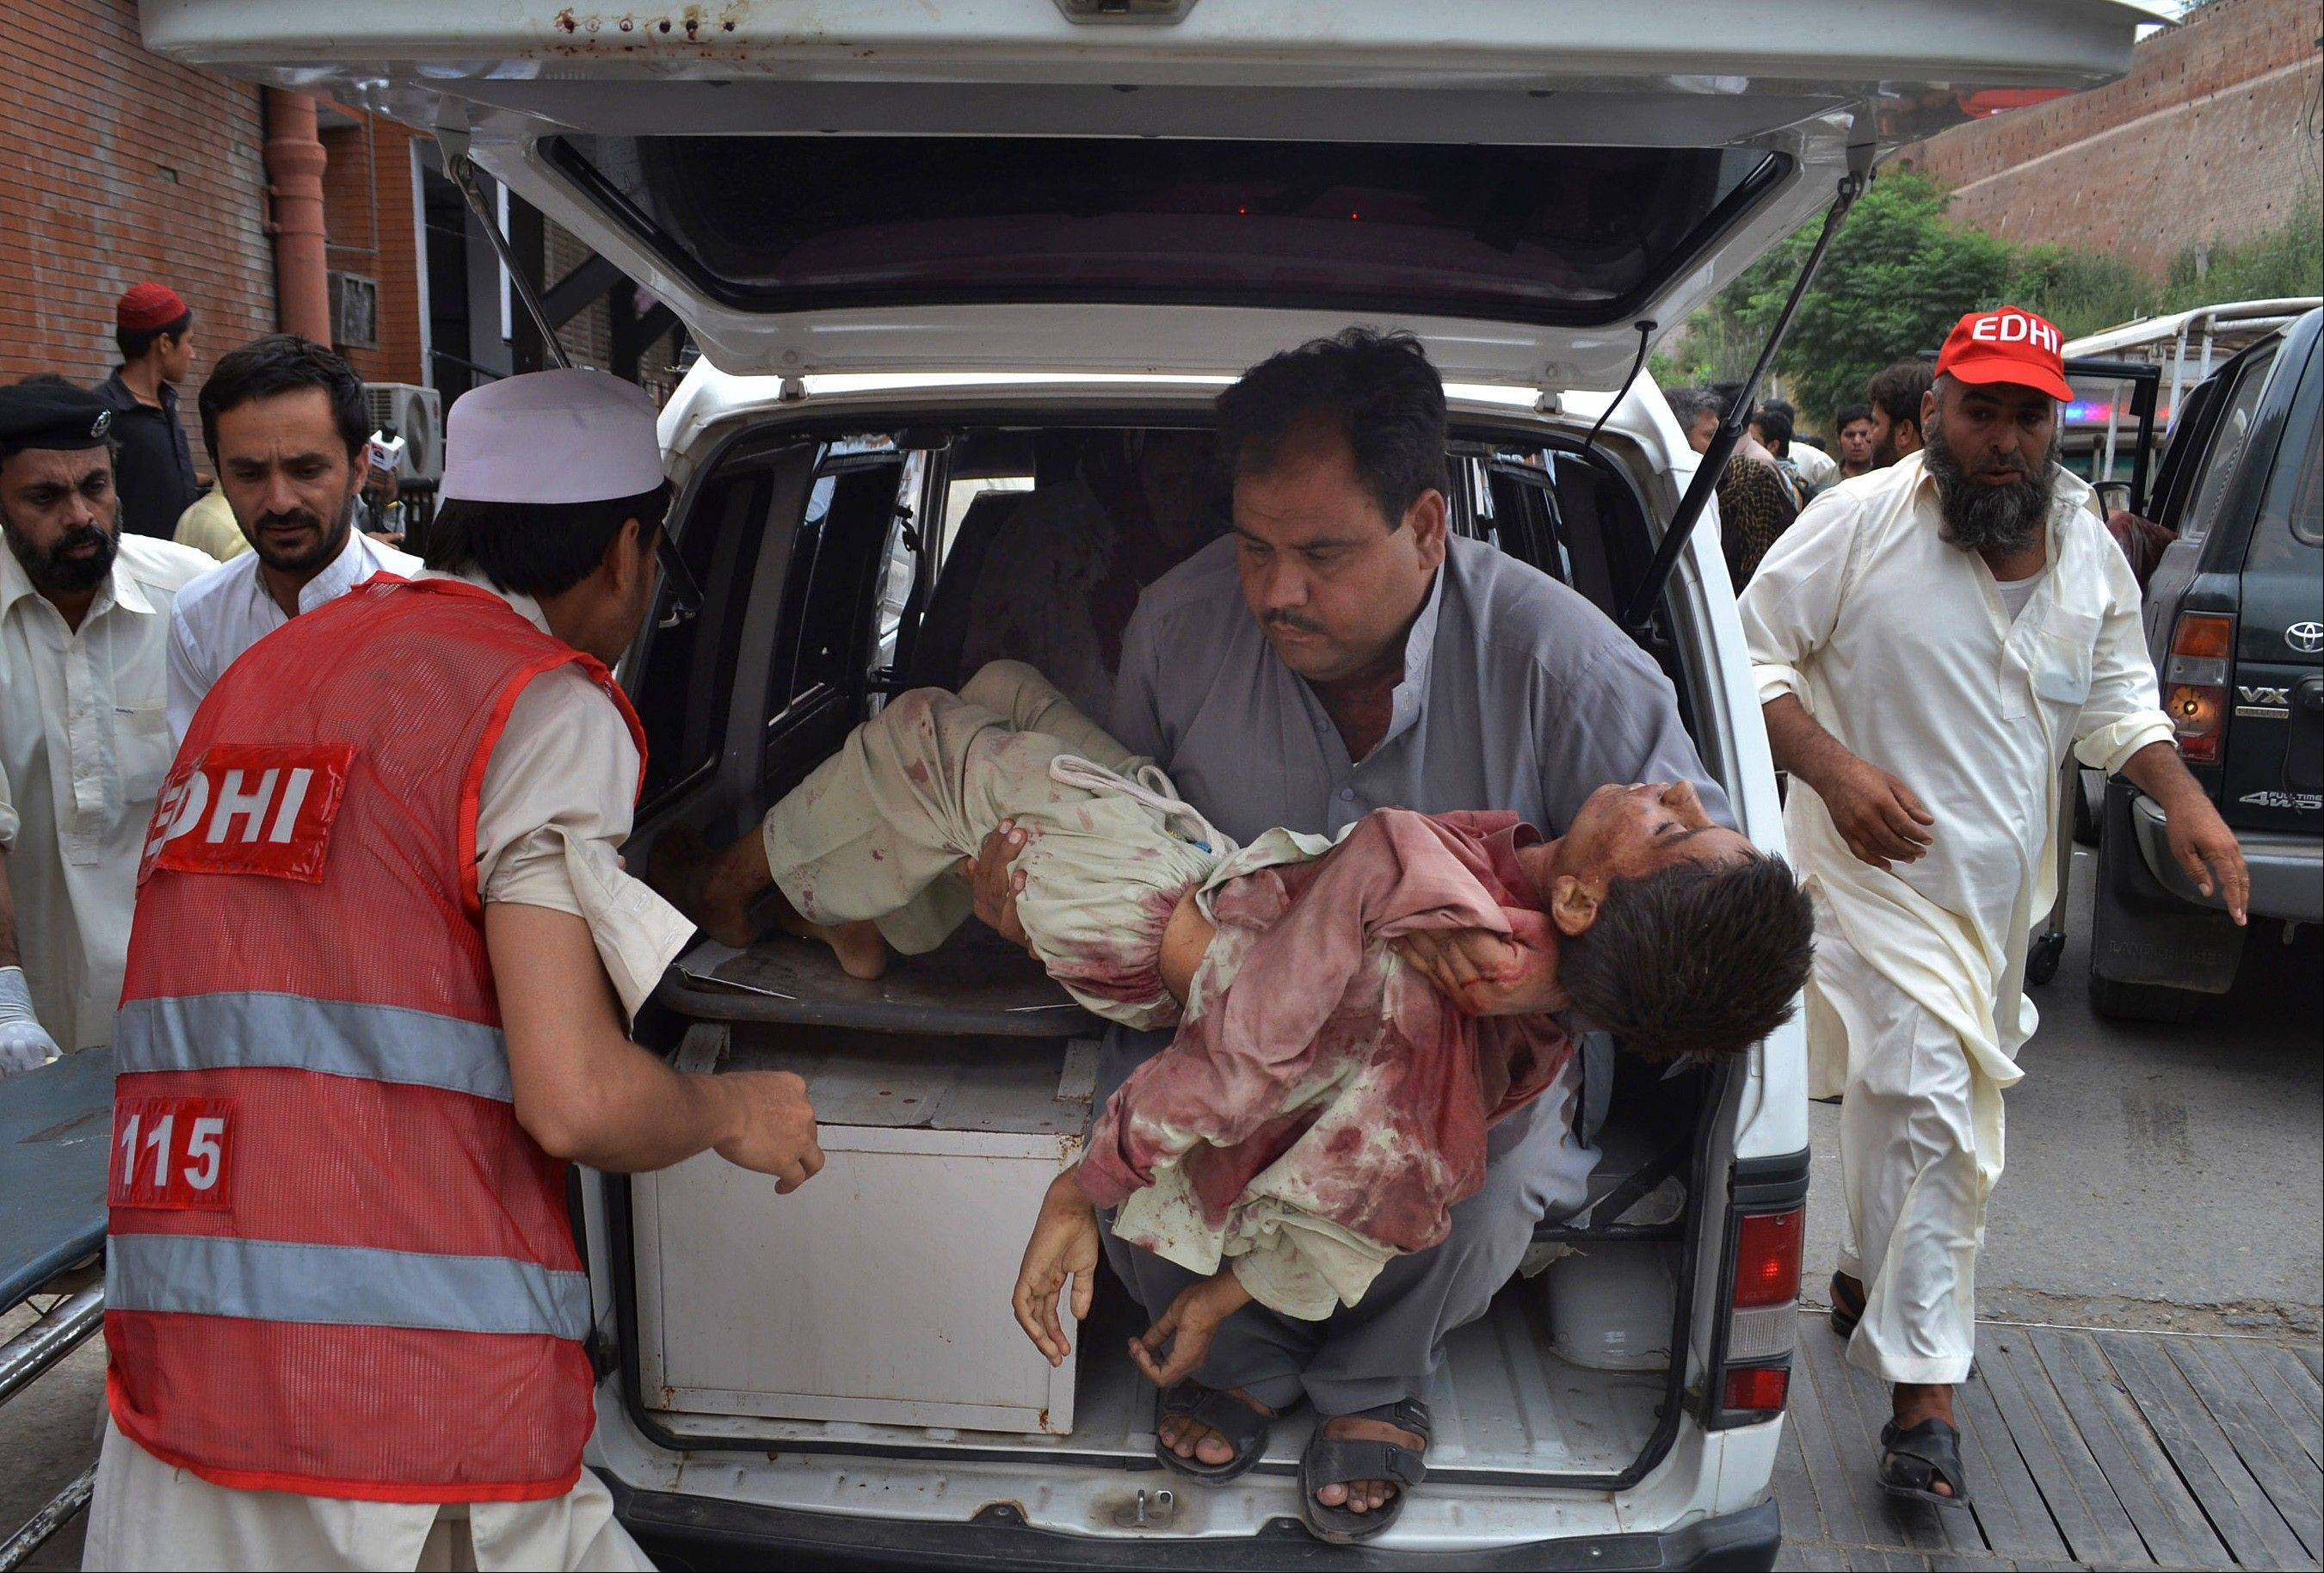 A Pakistani man carries a critically injured boy, a victim of a Sunday car bombing, from an ambulance upon his arrival at a hospital in Peshawar, Pakistan.